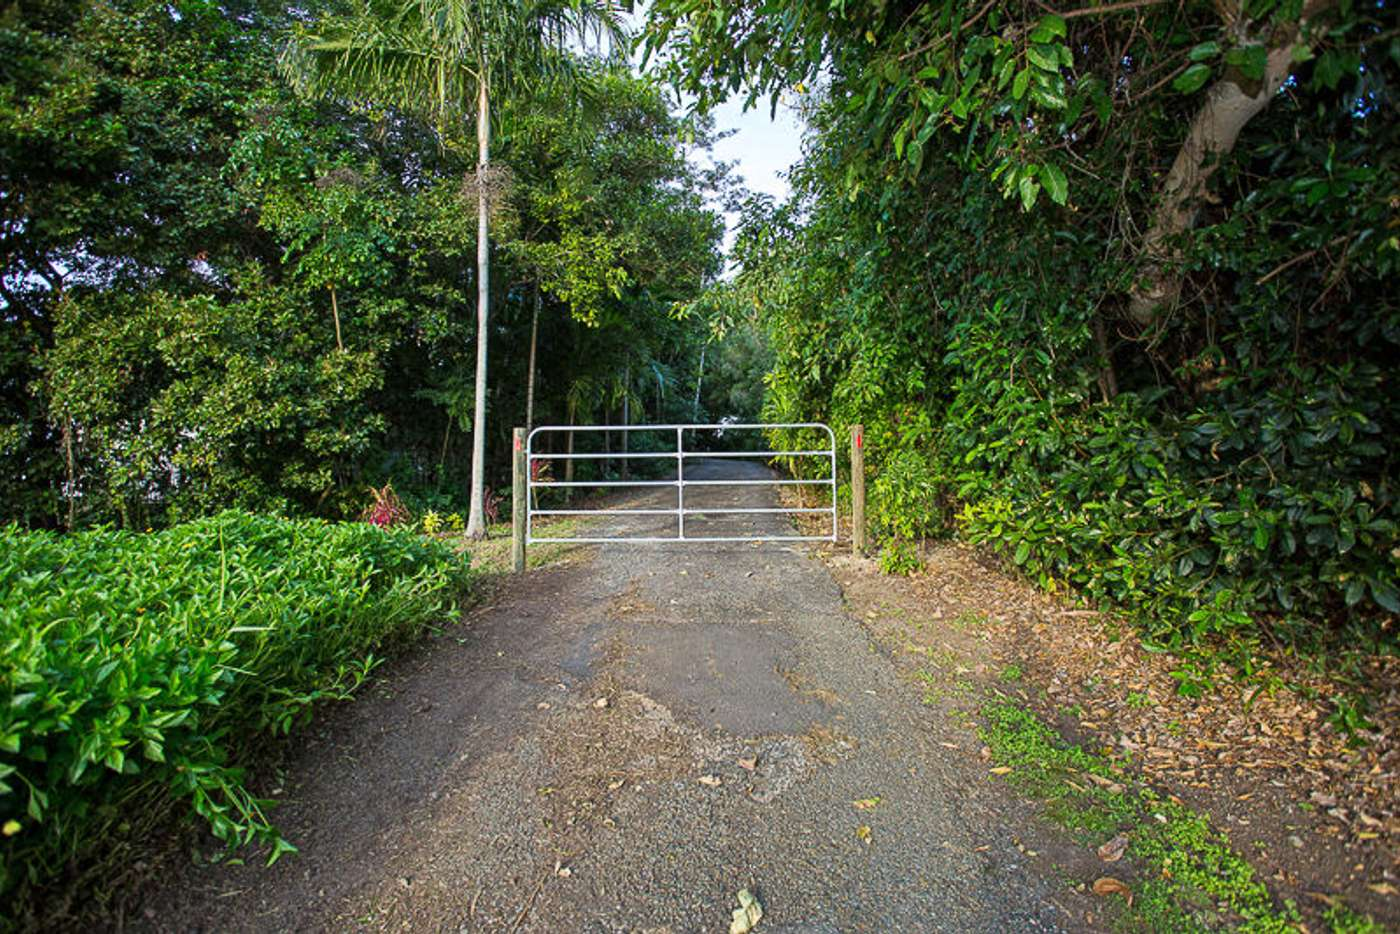 Main view of Homely residentialLand listing, 312 Shoal Point Road, Shoal Point QLD 4750